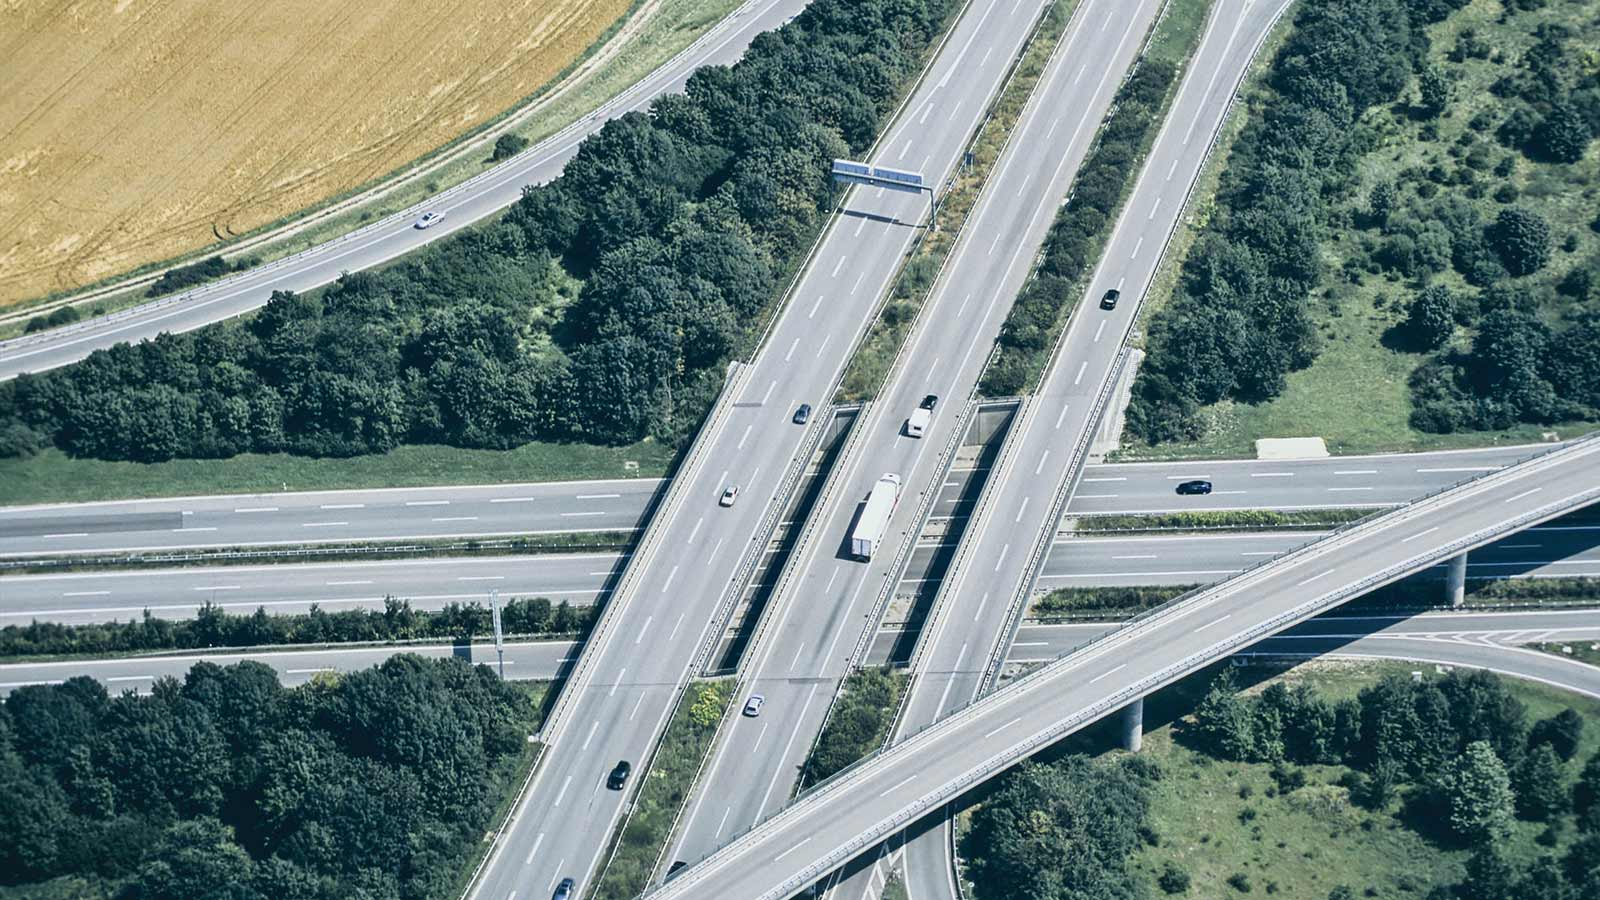 Birdseye view of crossing motor ways